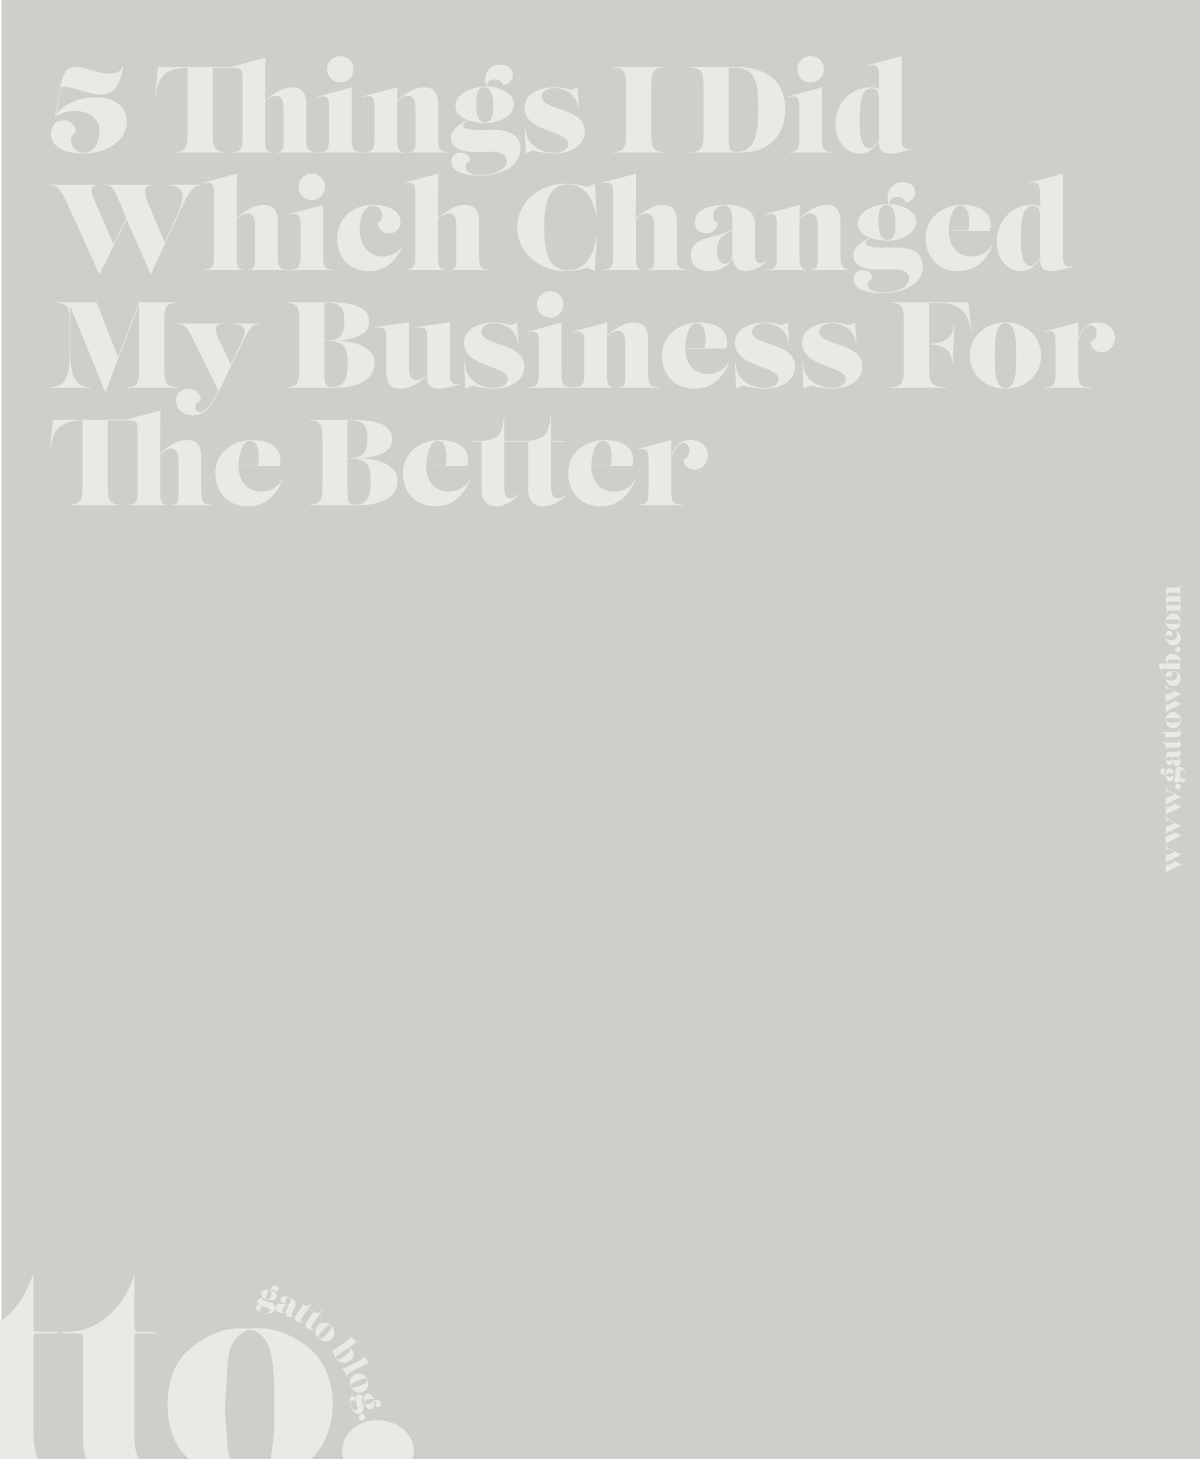 Five Things I Did Which Changed My Business For The Better